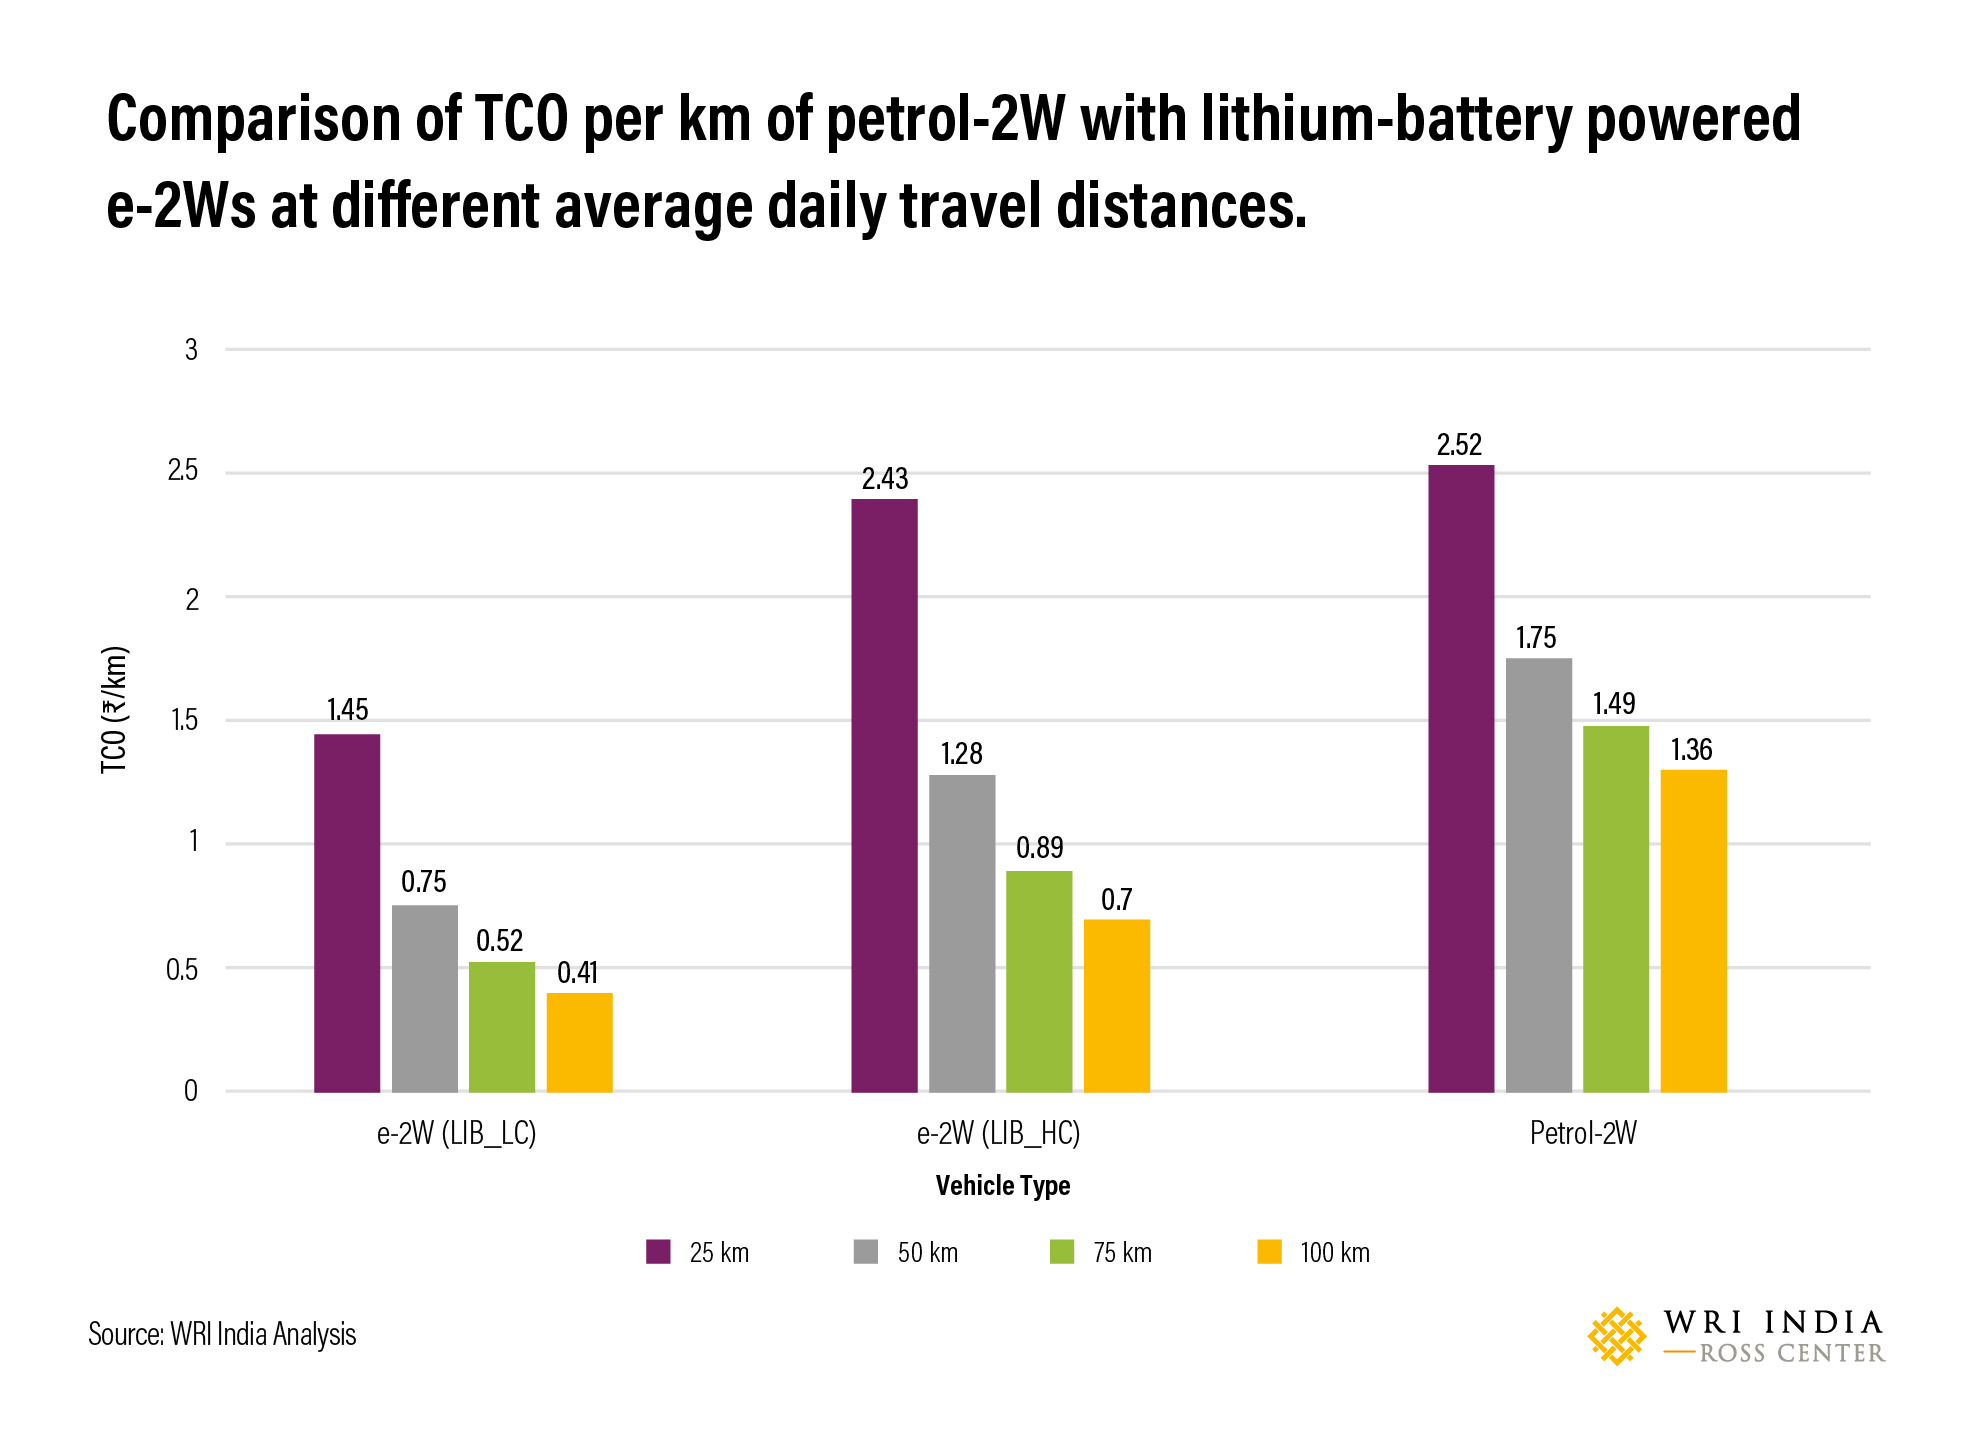 TCO per km of petrol-2W with lithium-battery powered e-2Ws